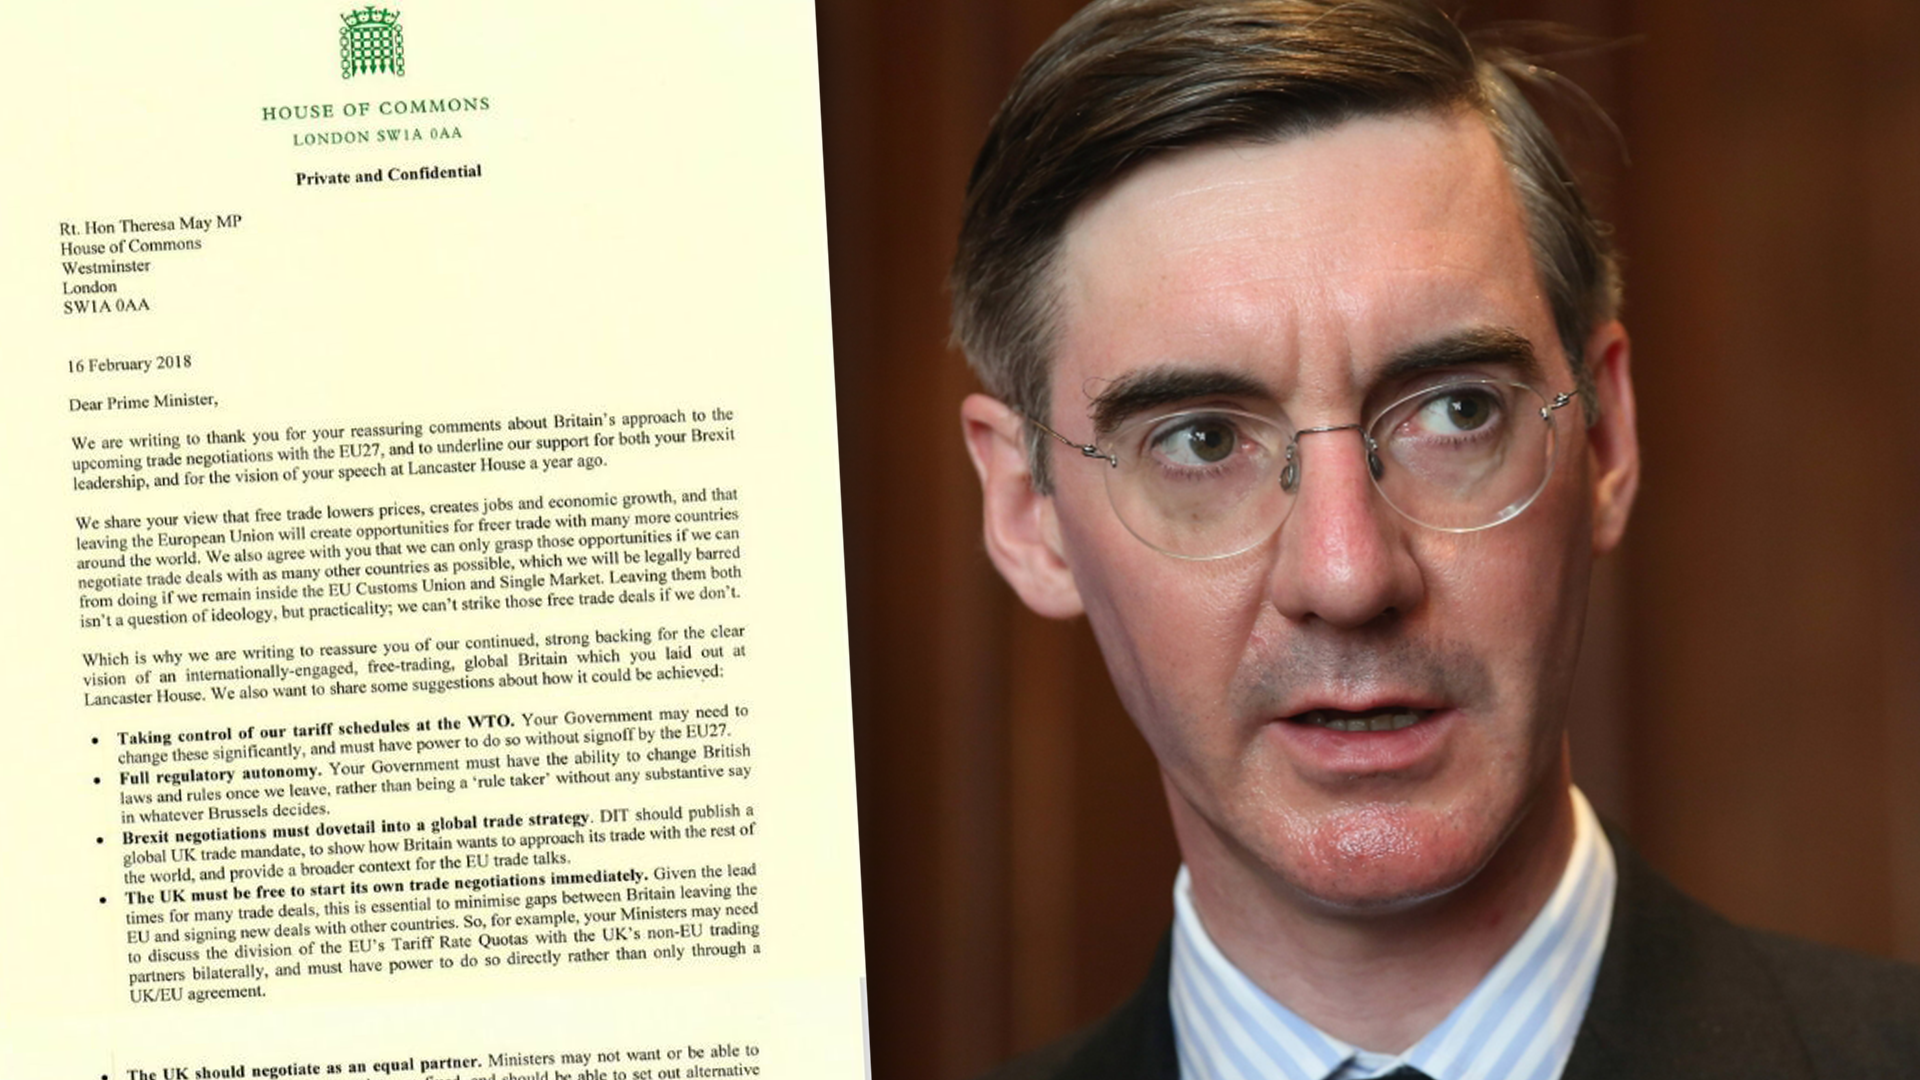 MOGG DEMANDS TRUE BREXIT: Jacob Rees-Mogg lays down red